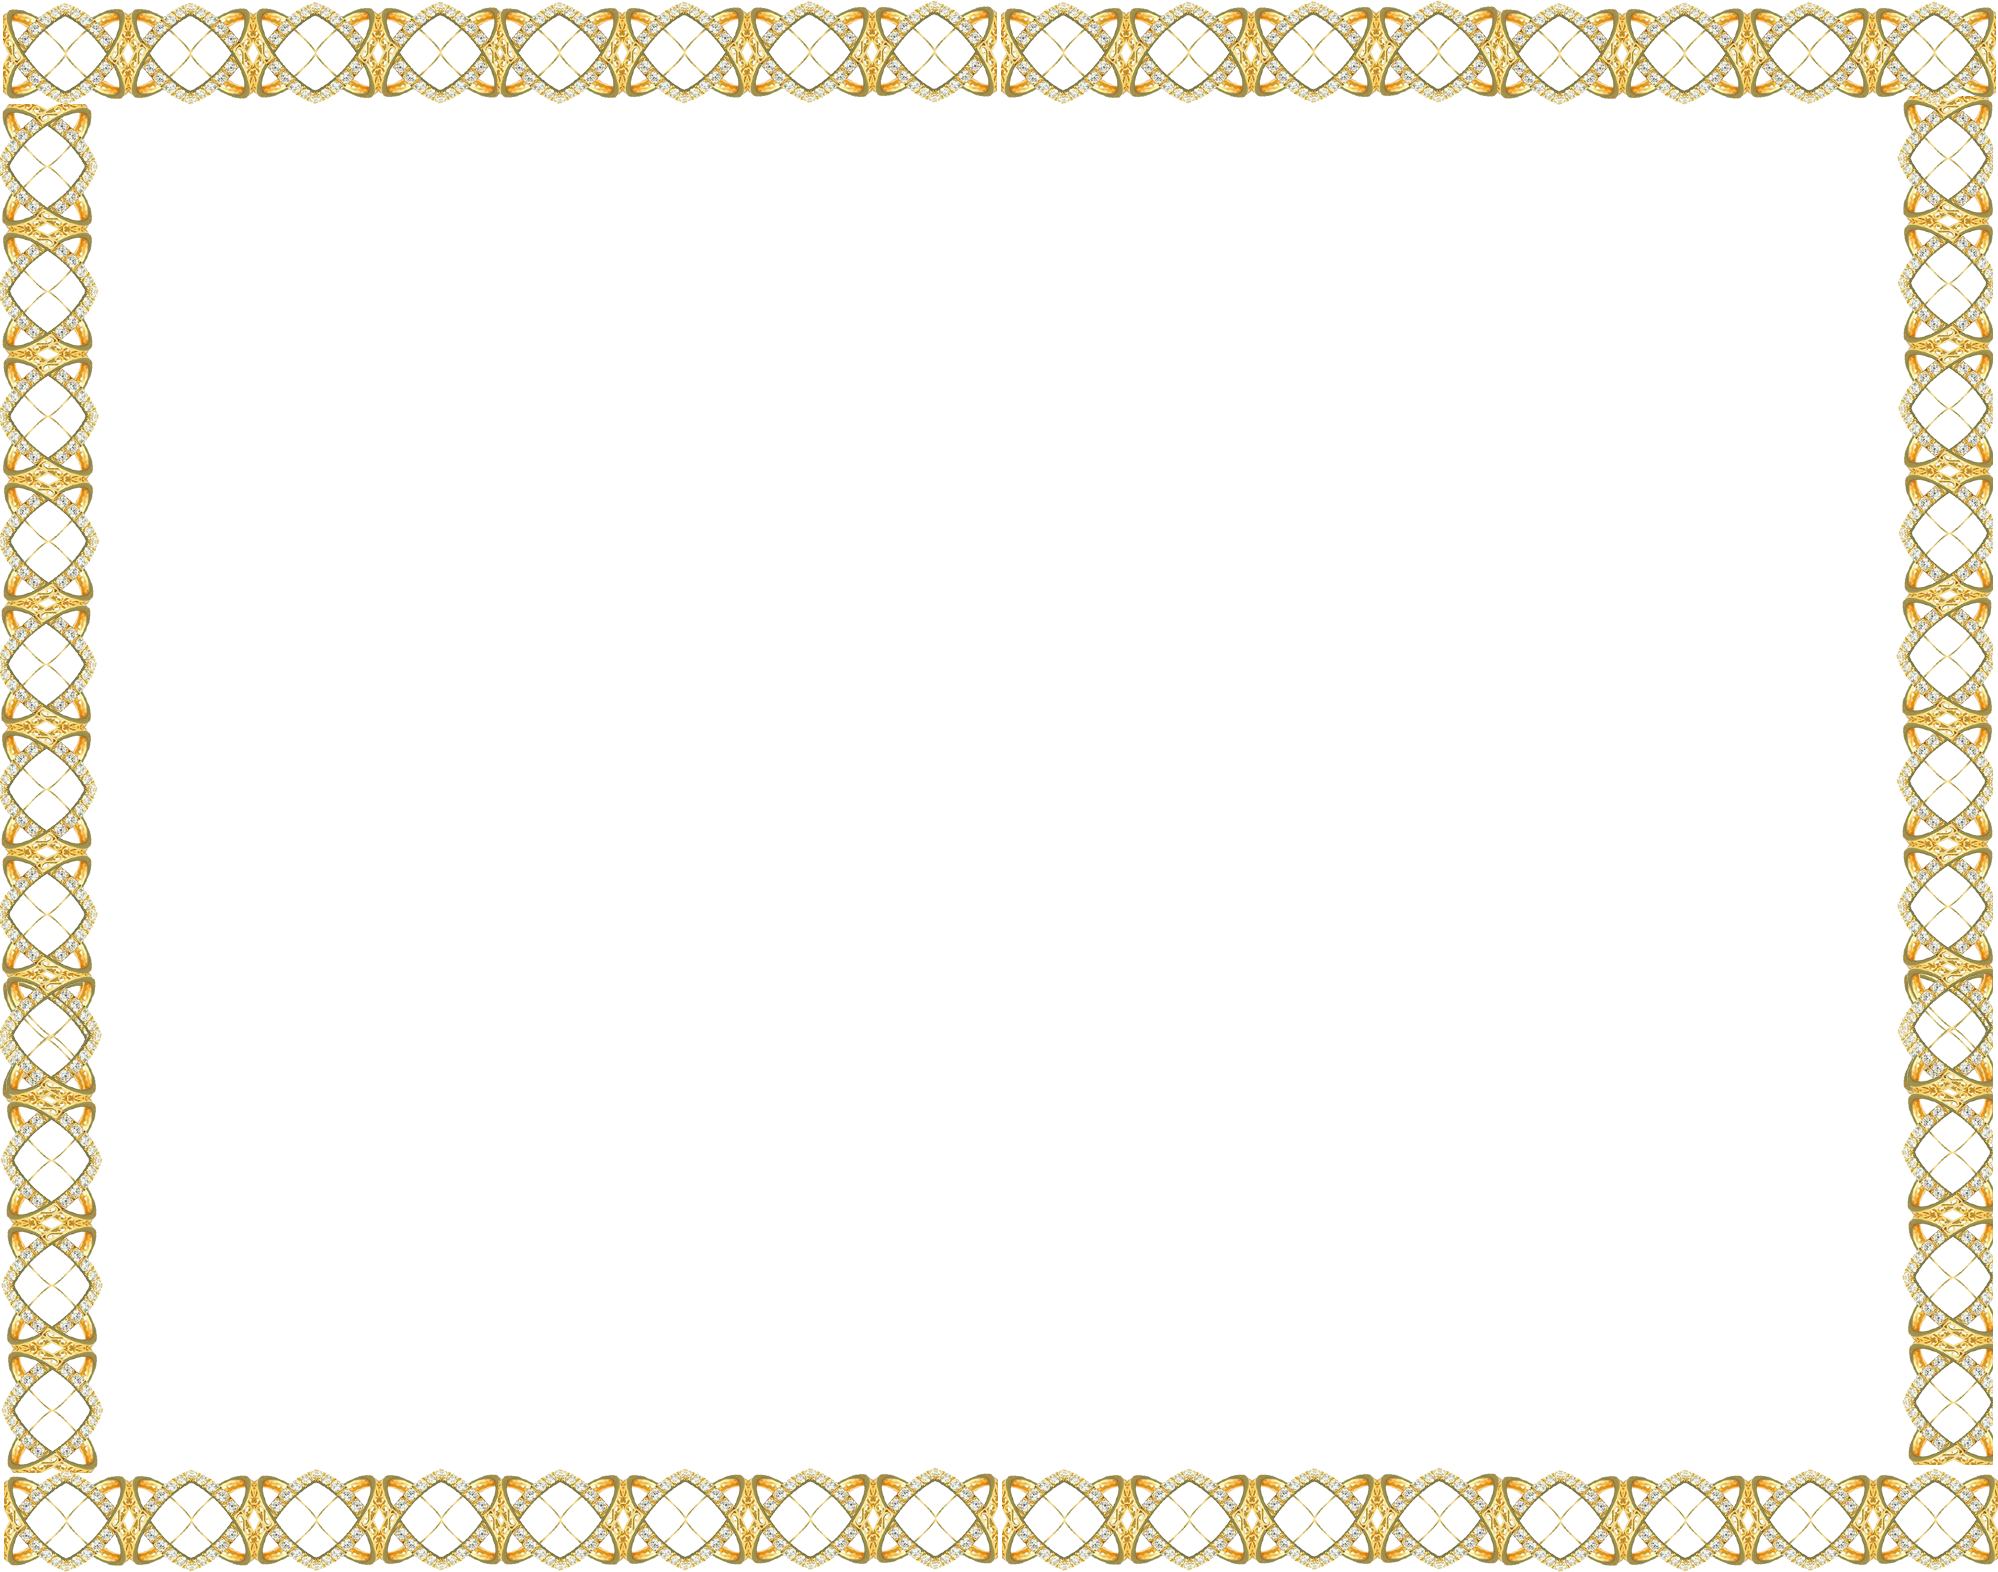 Free icons and backgrounds. Golden border png